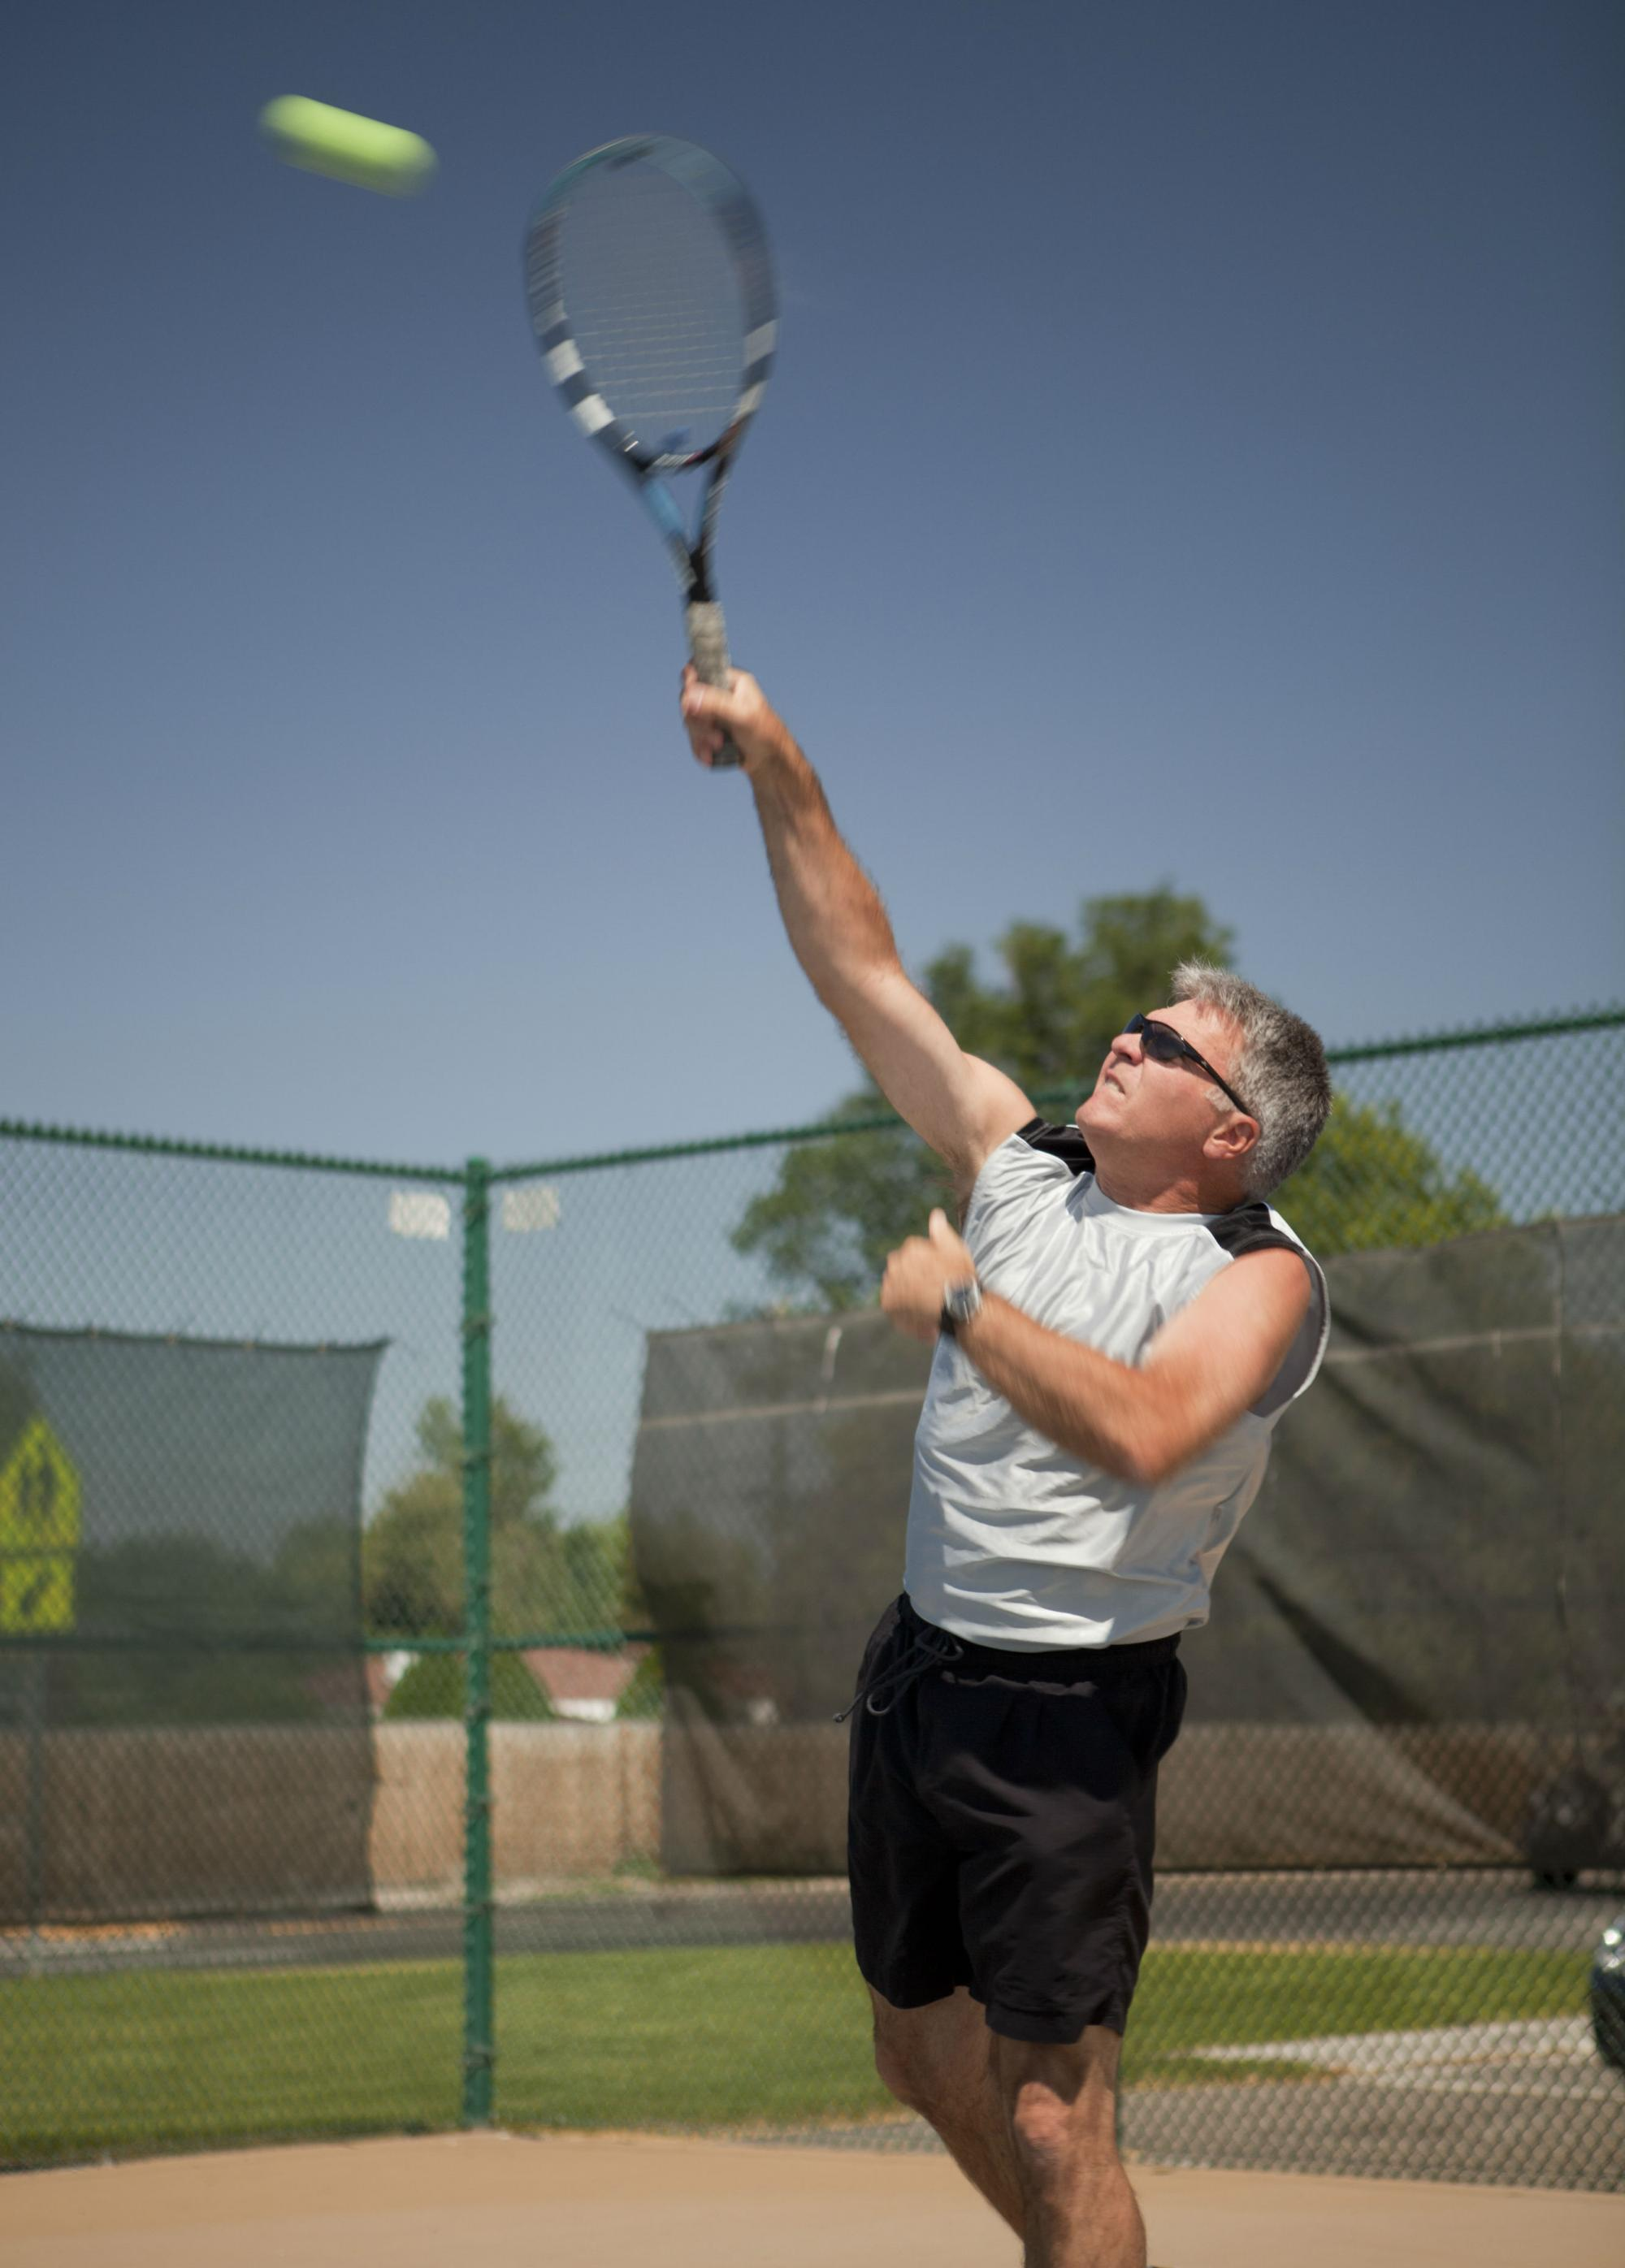 Tom Wagner, retired PT playing tennis